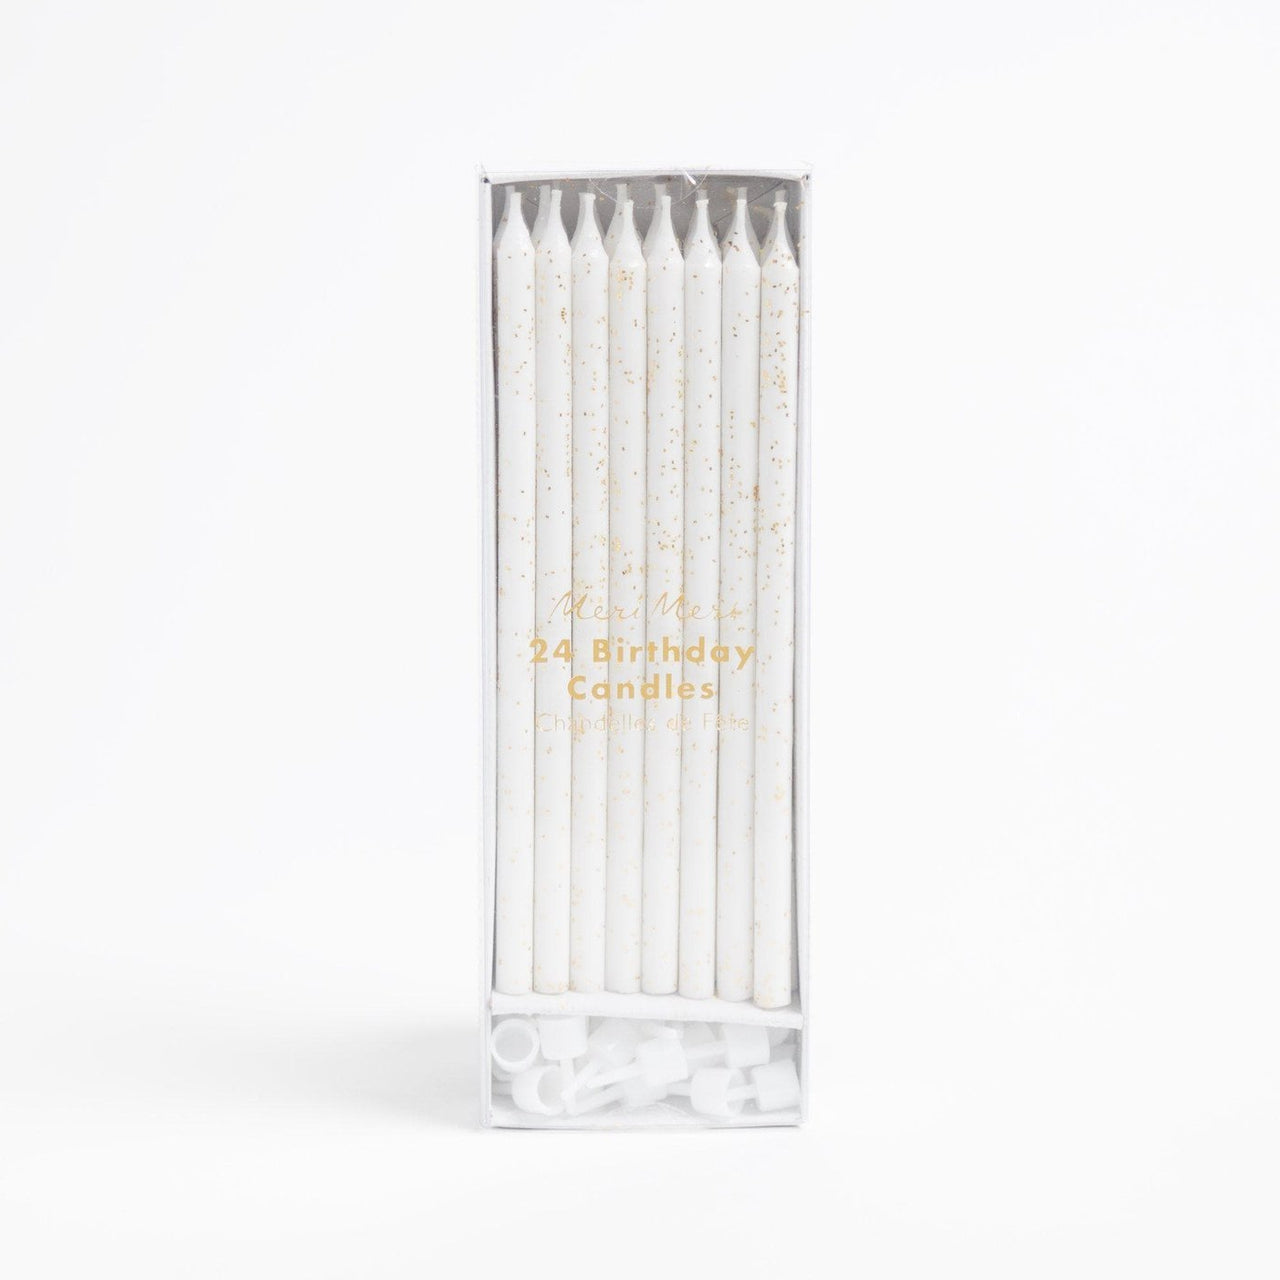 Gold glitter candles by Crumbs & Doilies